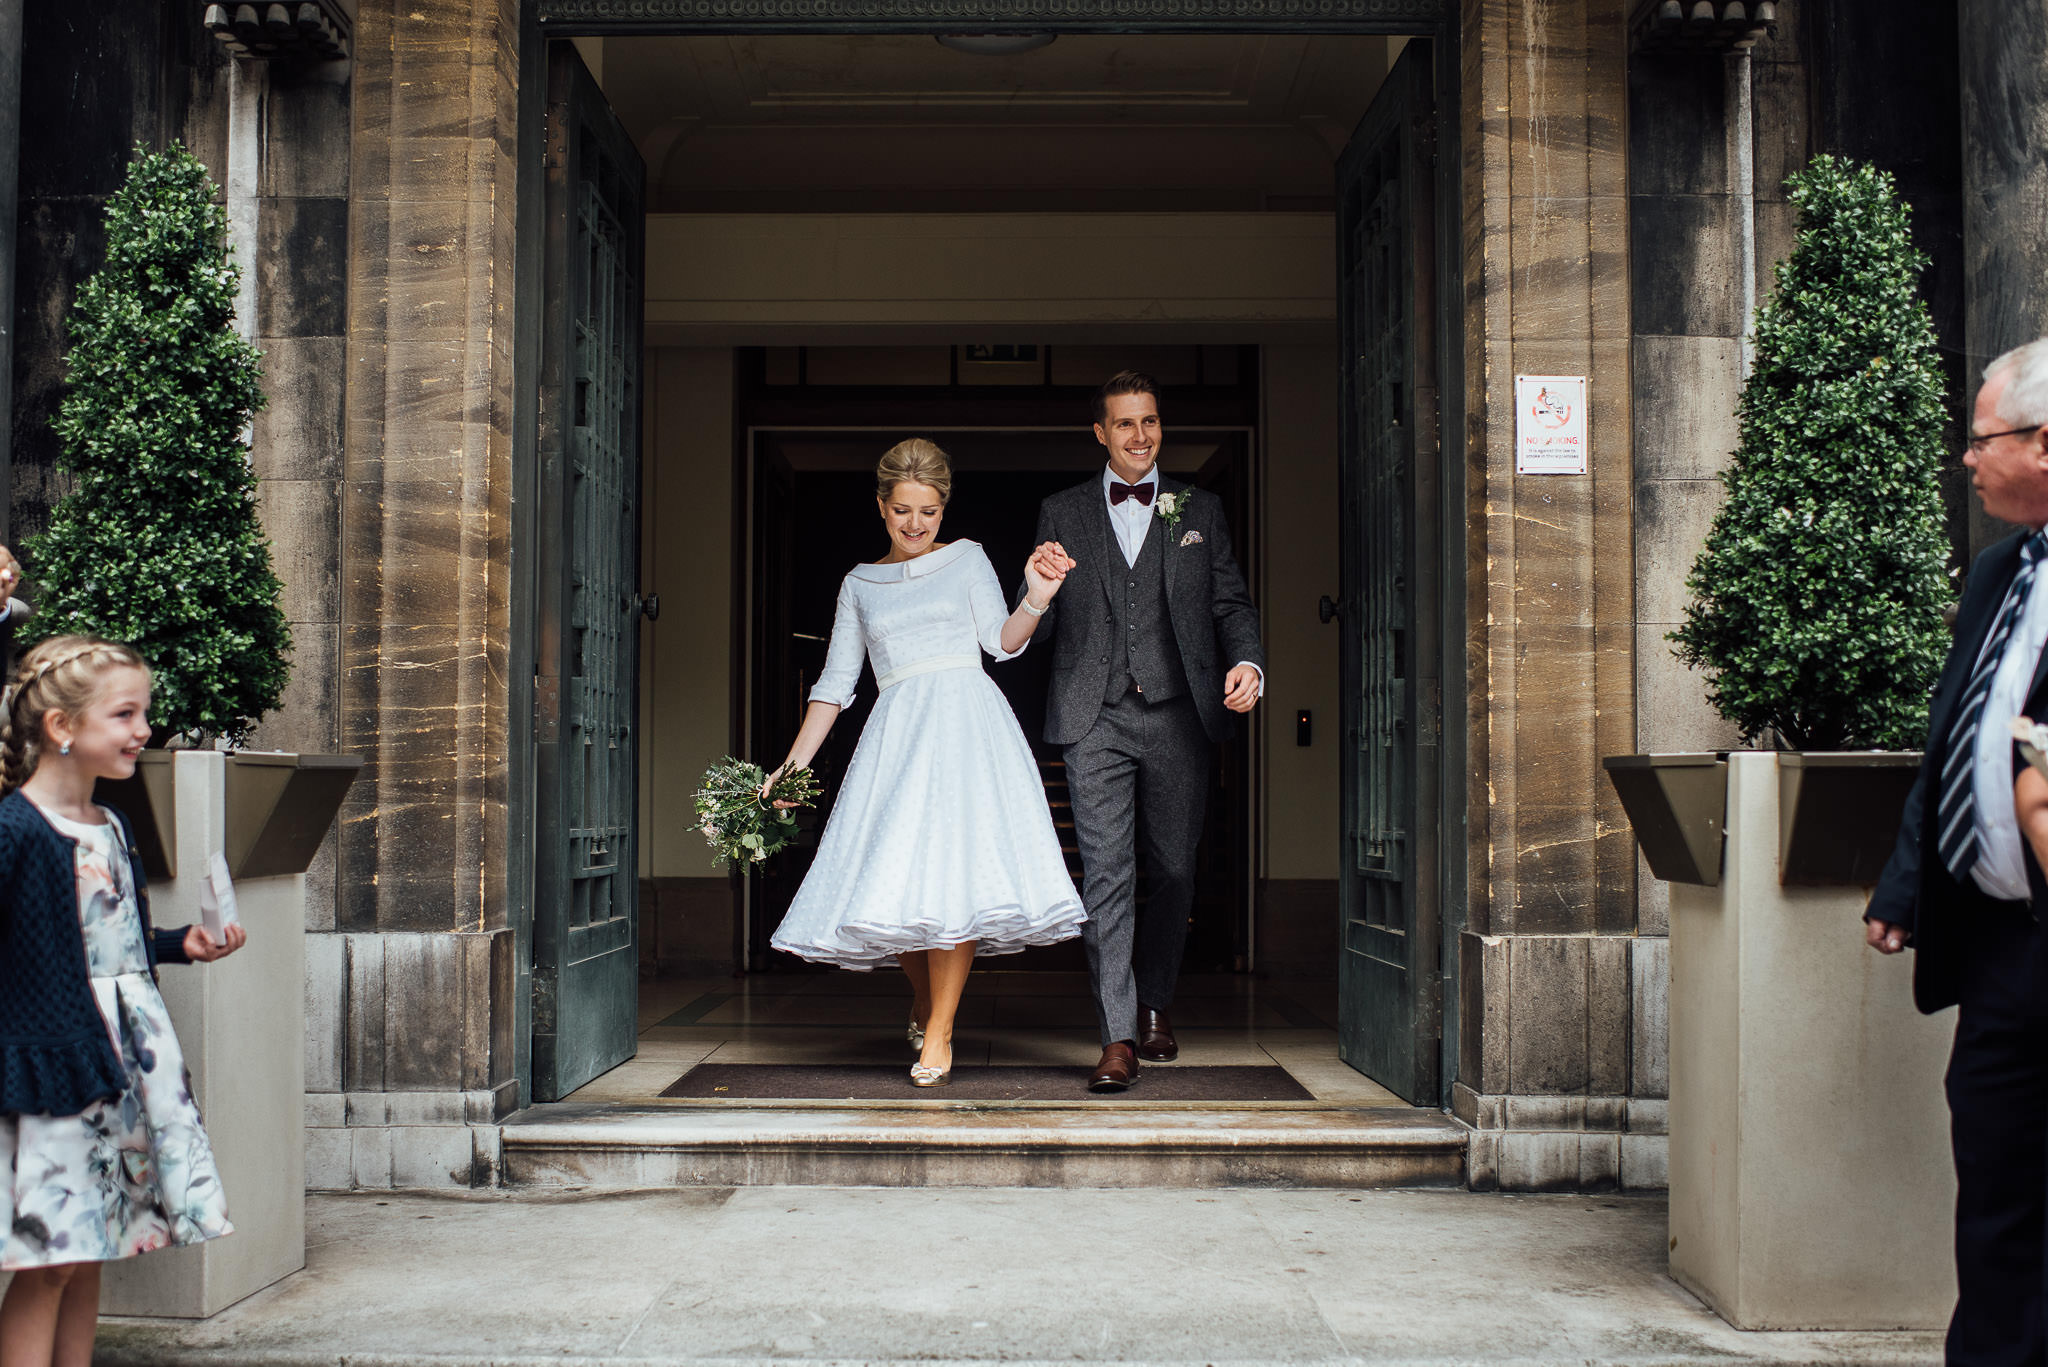 Couple exiting stoke newington town hall in stoke newington town hall wedding by creative and alternative london wedding photographer the shannons photography